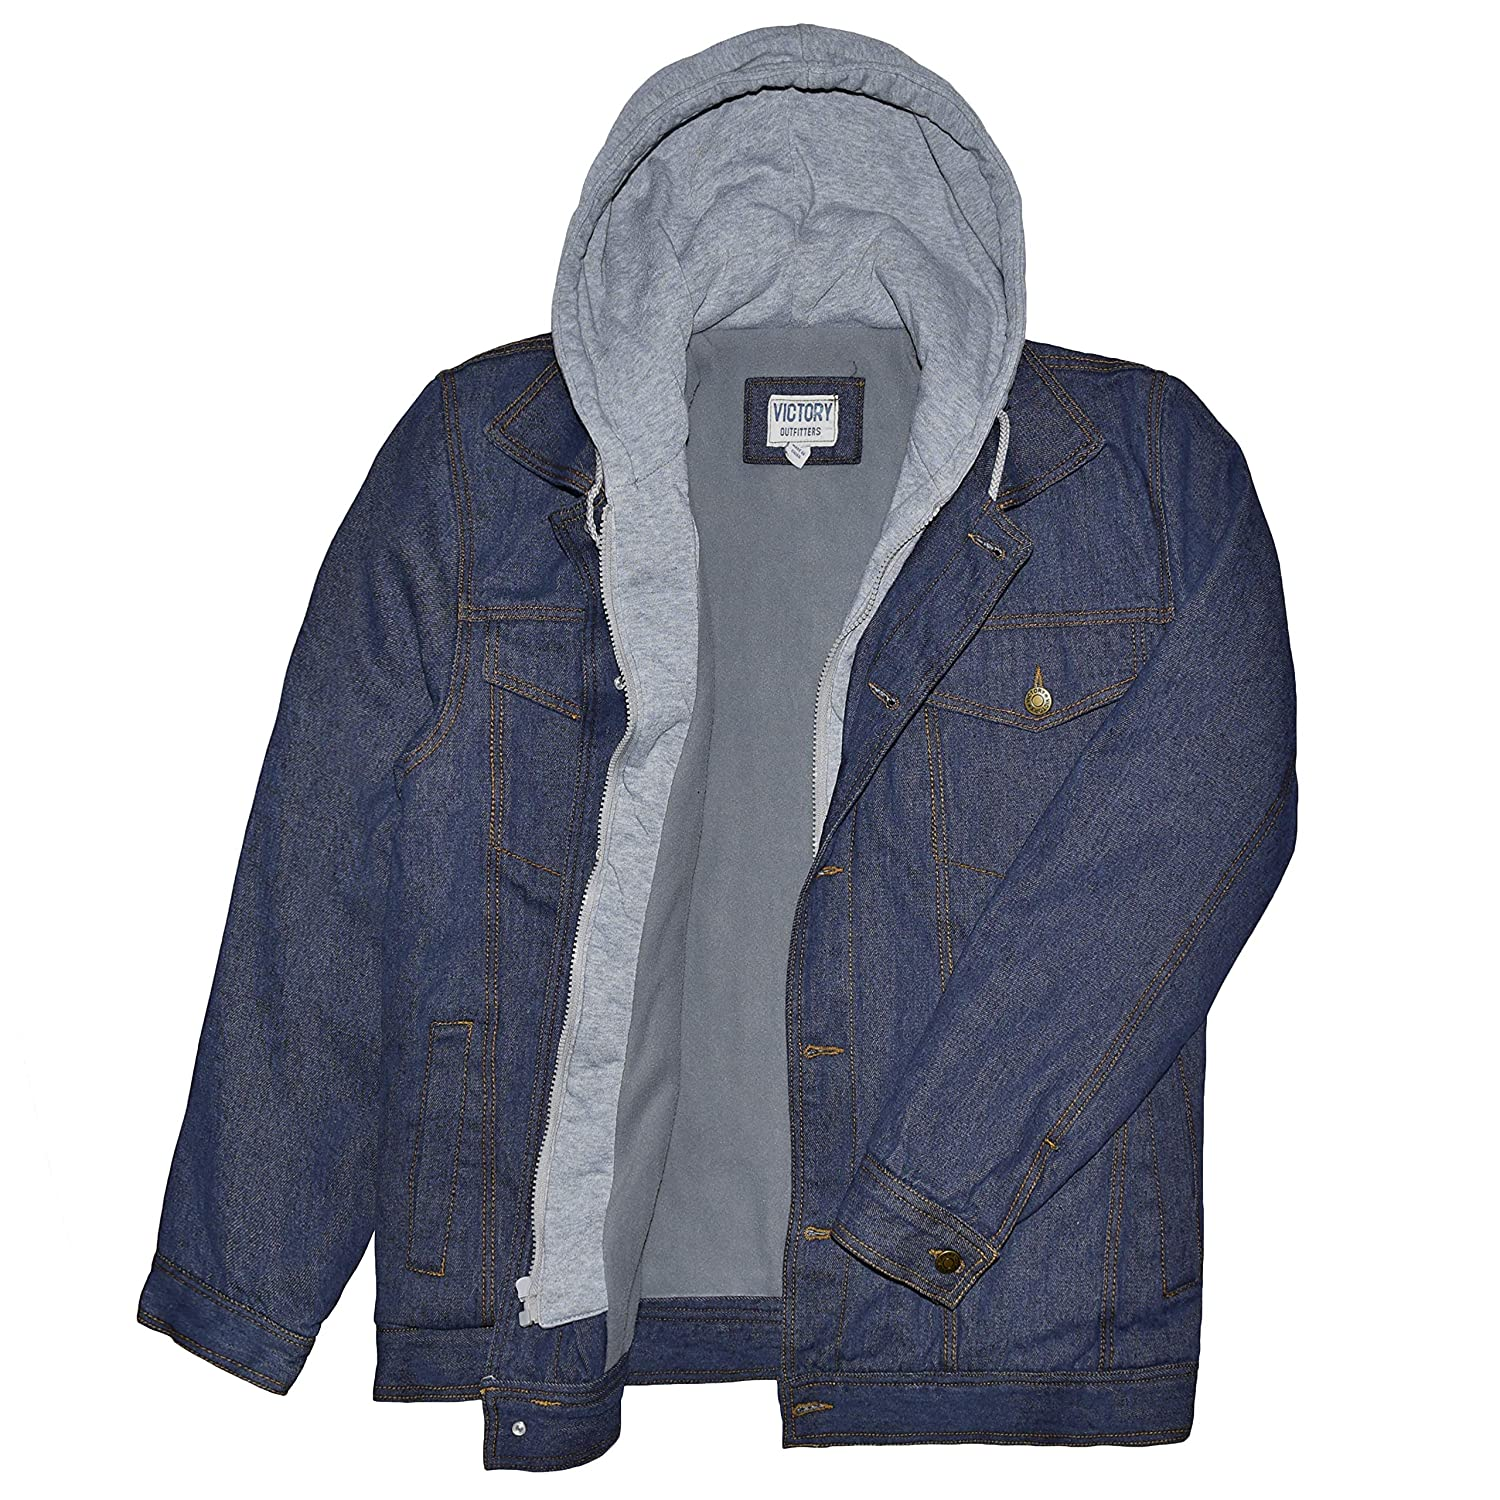 Victory Outfitters Mens Hooded Fleece Lined Washed Denim Jacket